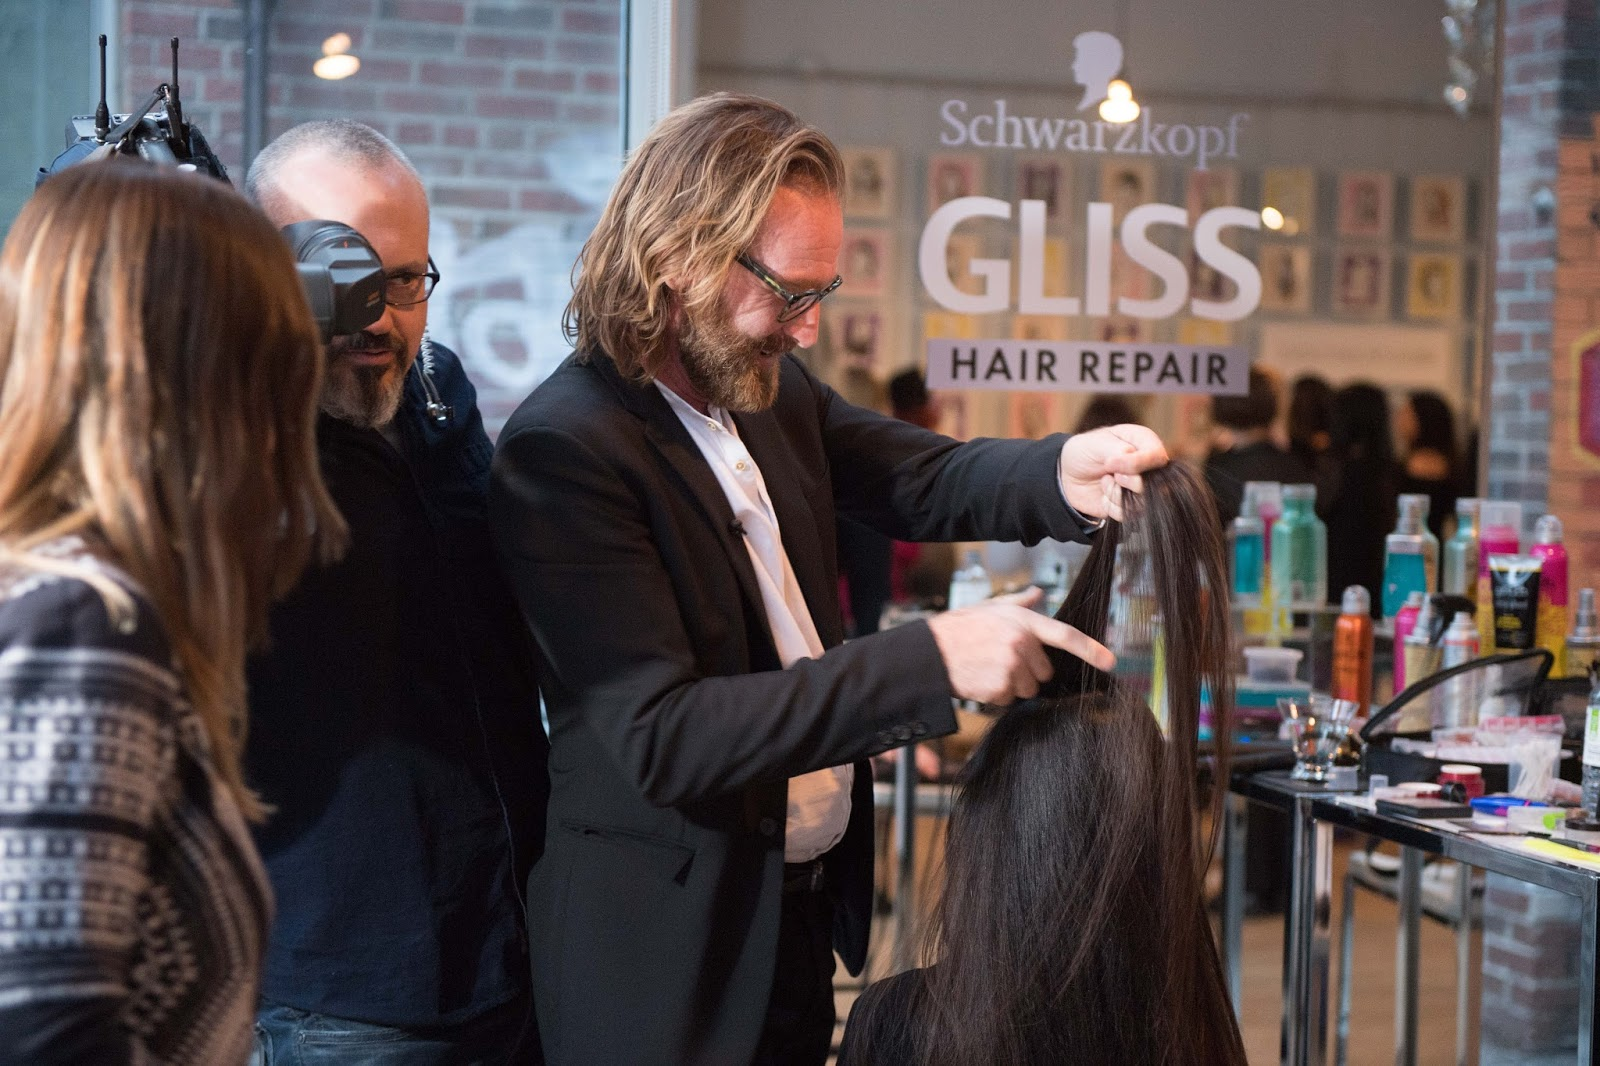 gliis hair repair peter butler damaged shoppers